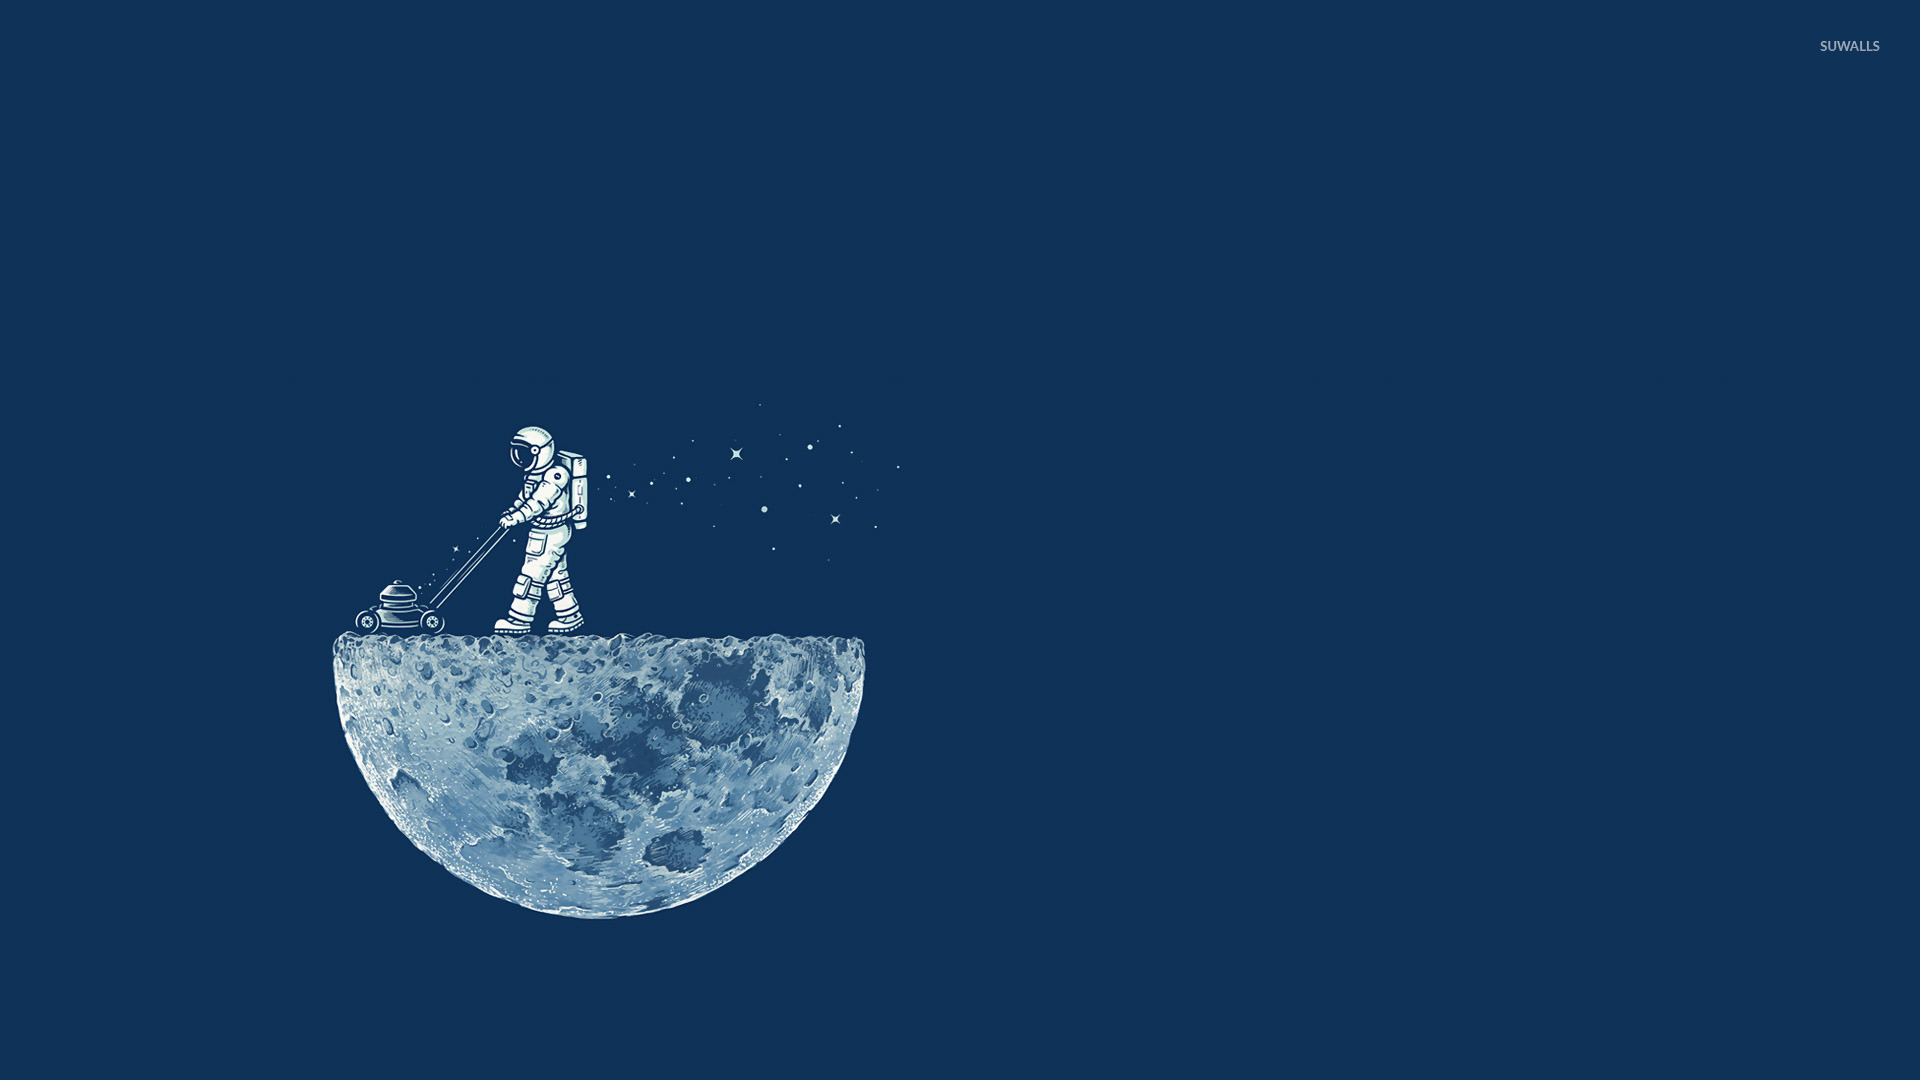 astronaut on moon earth background - photo #20